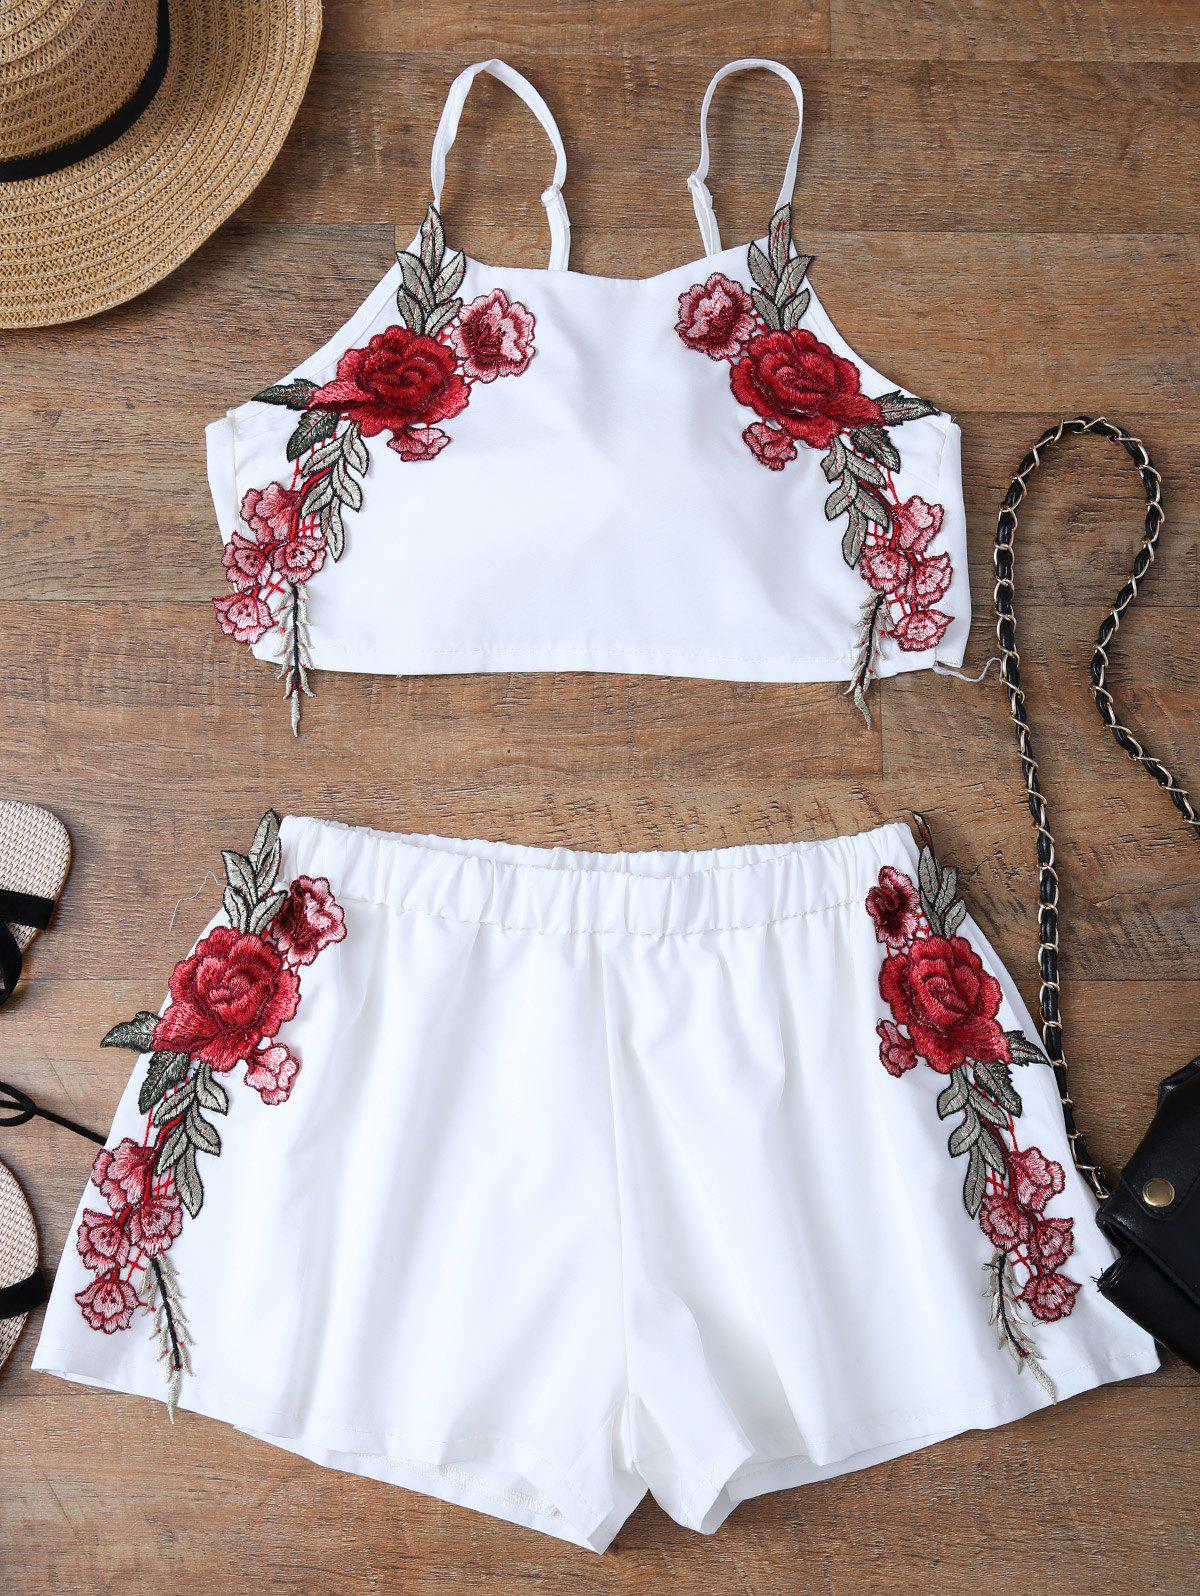 Floral Applique Bowknot Top with Shorts floral applique bowknot top with shorts